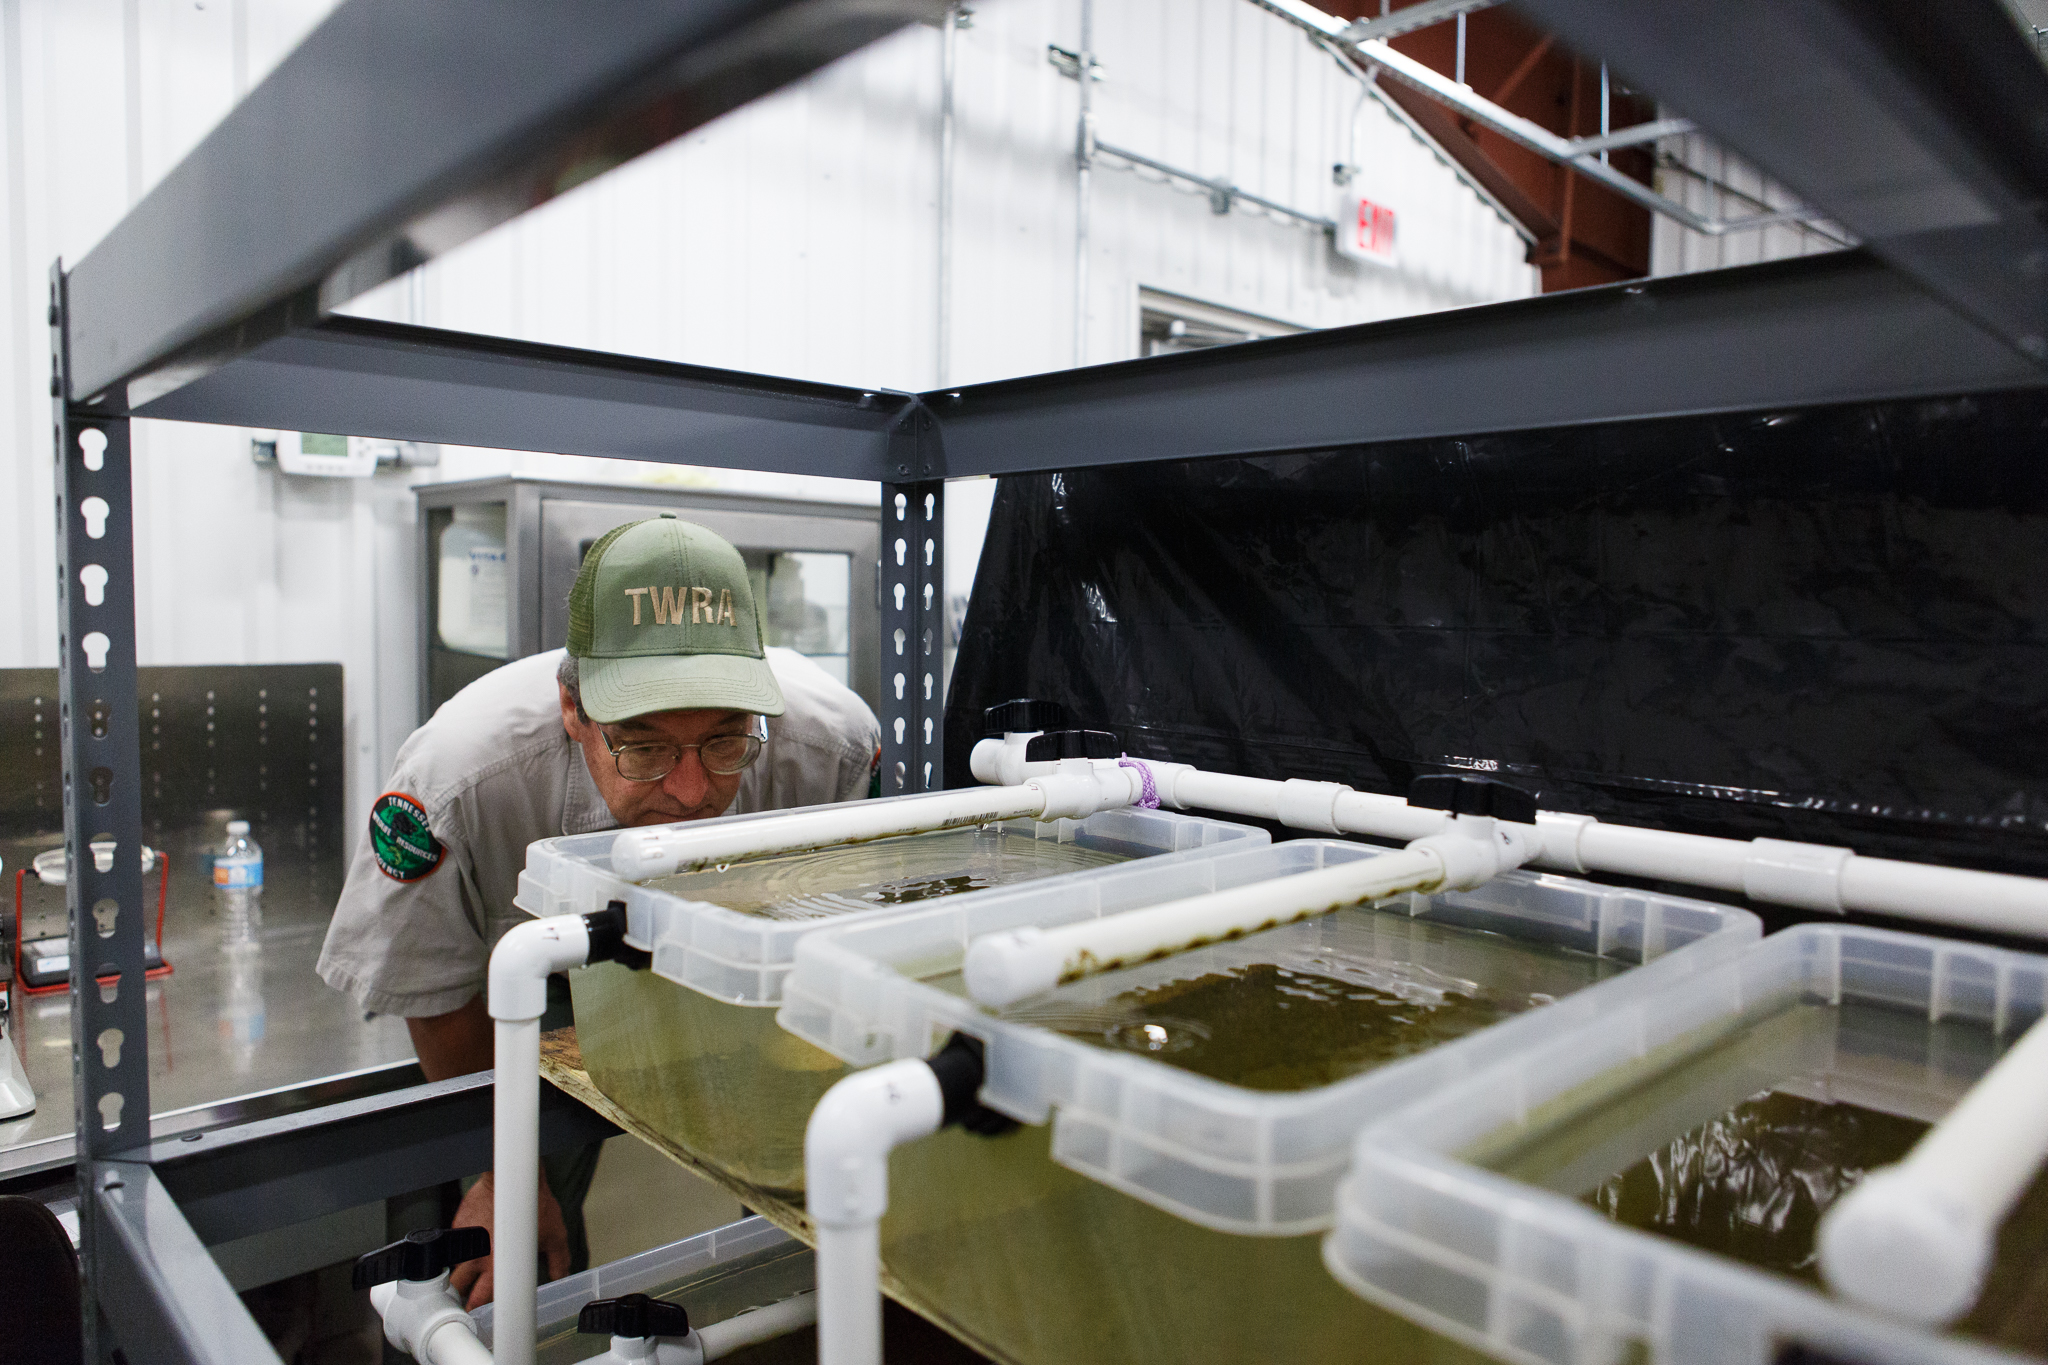 David Sims inspects juvenile mussels housed in a row of culture tanks in the Cumberland Aquatic Center. Photograph by Kathryn Whitney